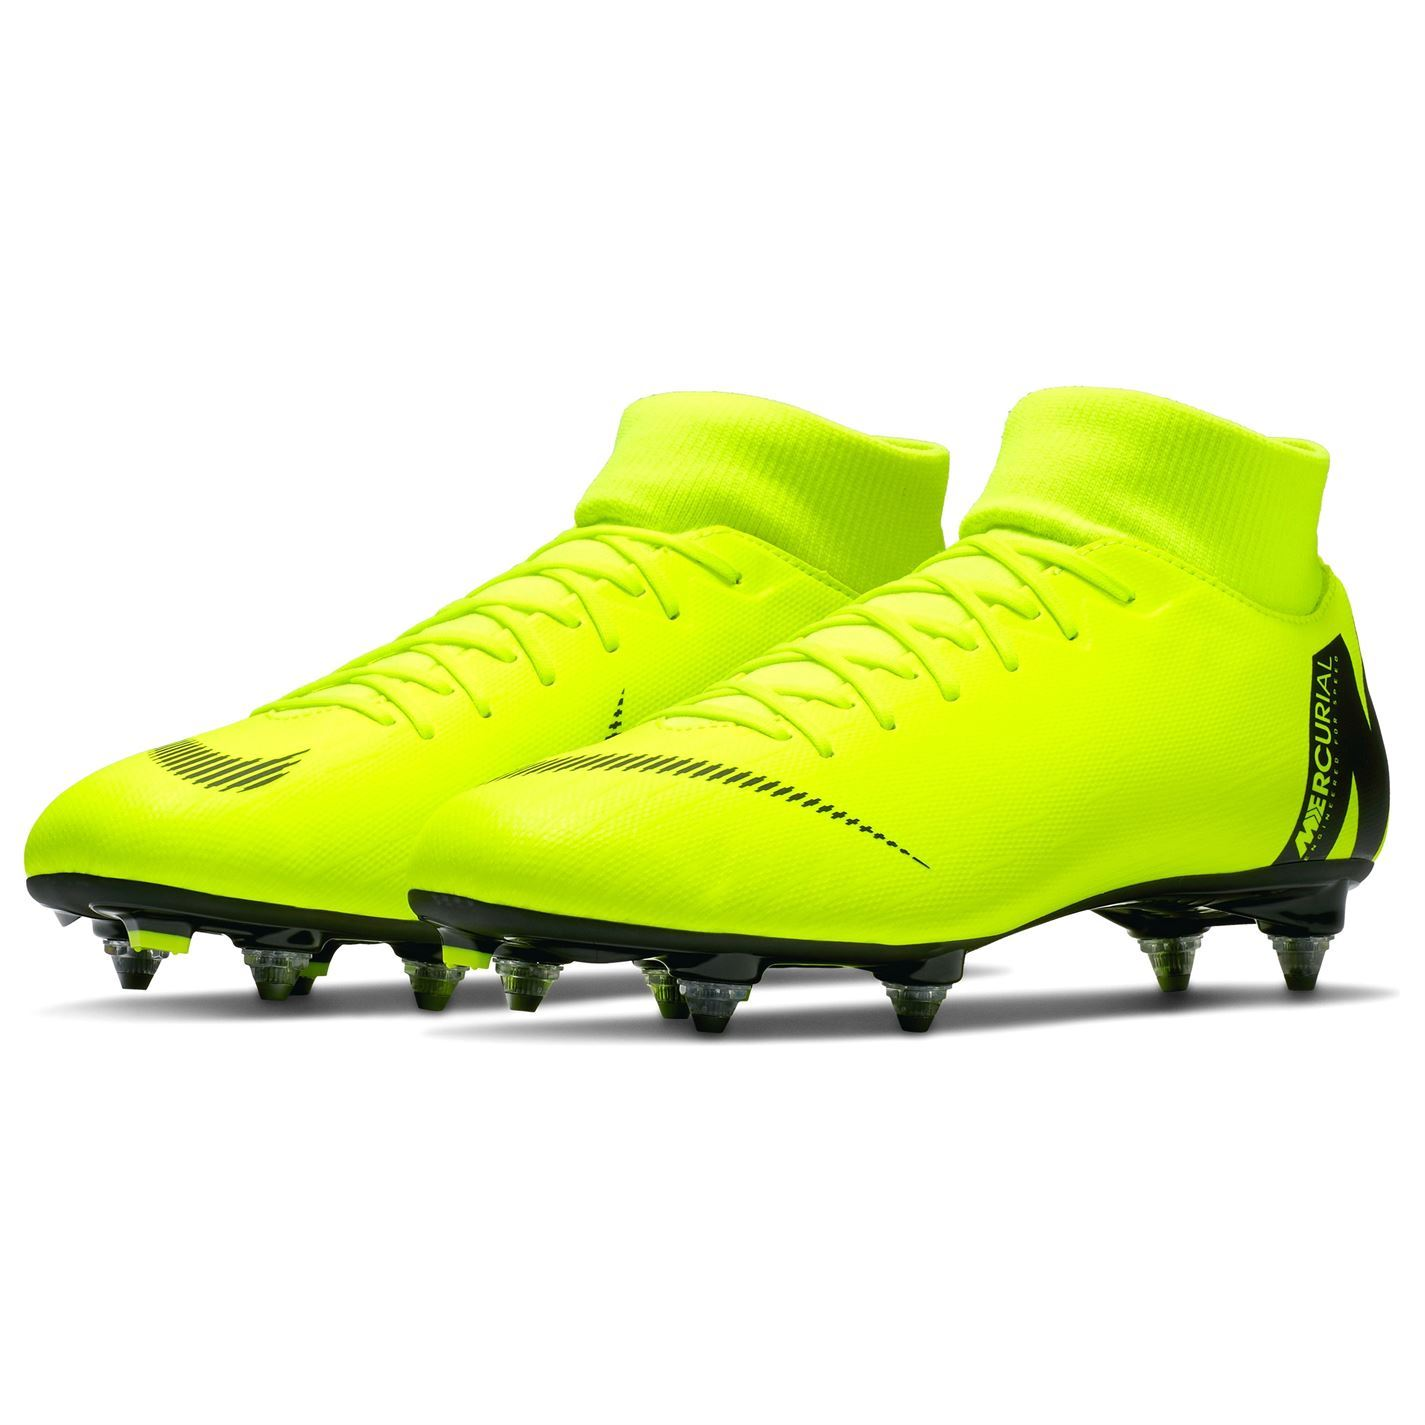 61c8bbc1382c ... Nike Mercurial Superfly Academy DF Soft Ground Football Boots Mens  Soccer Cleats ...